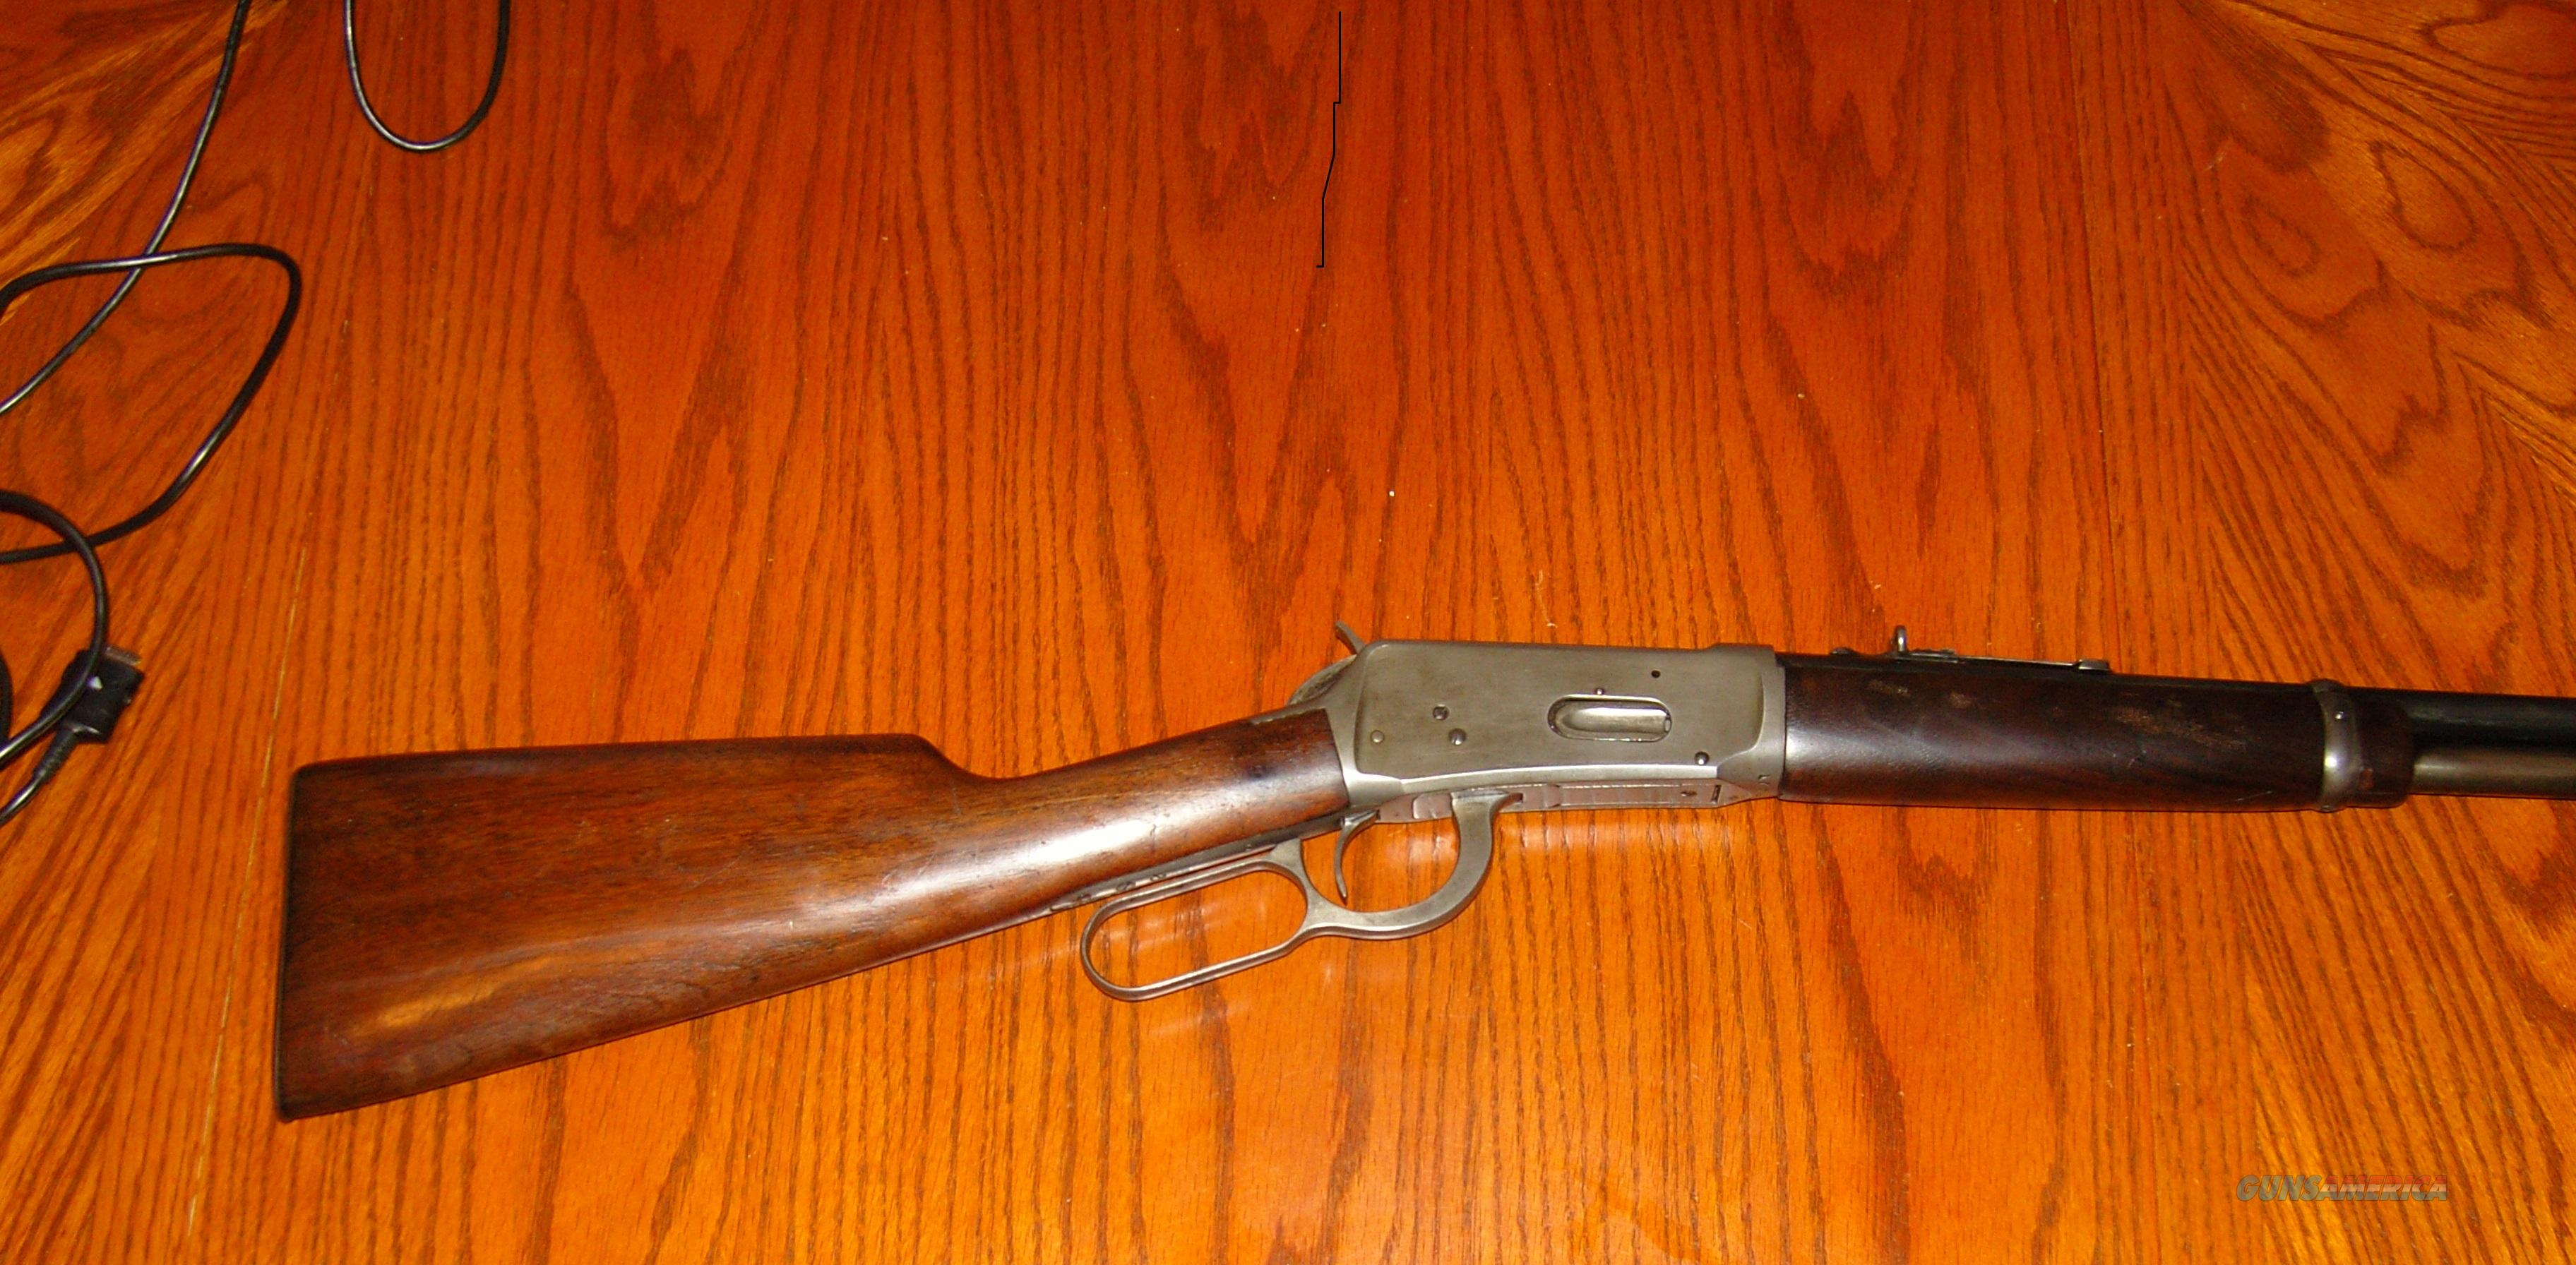 Winchester model 94 32 win, spl.  Guns > Rifles > Winchester Rifles - Modern Lever > Model 94 > Pre-64